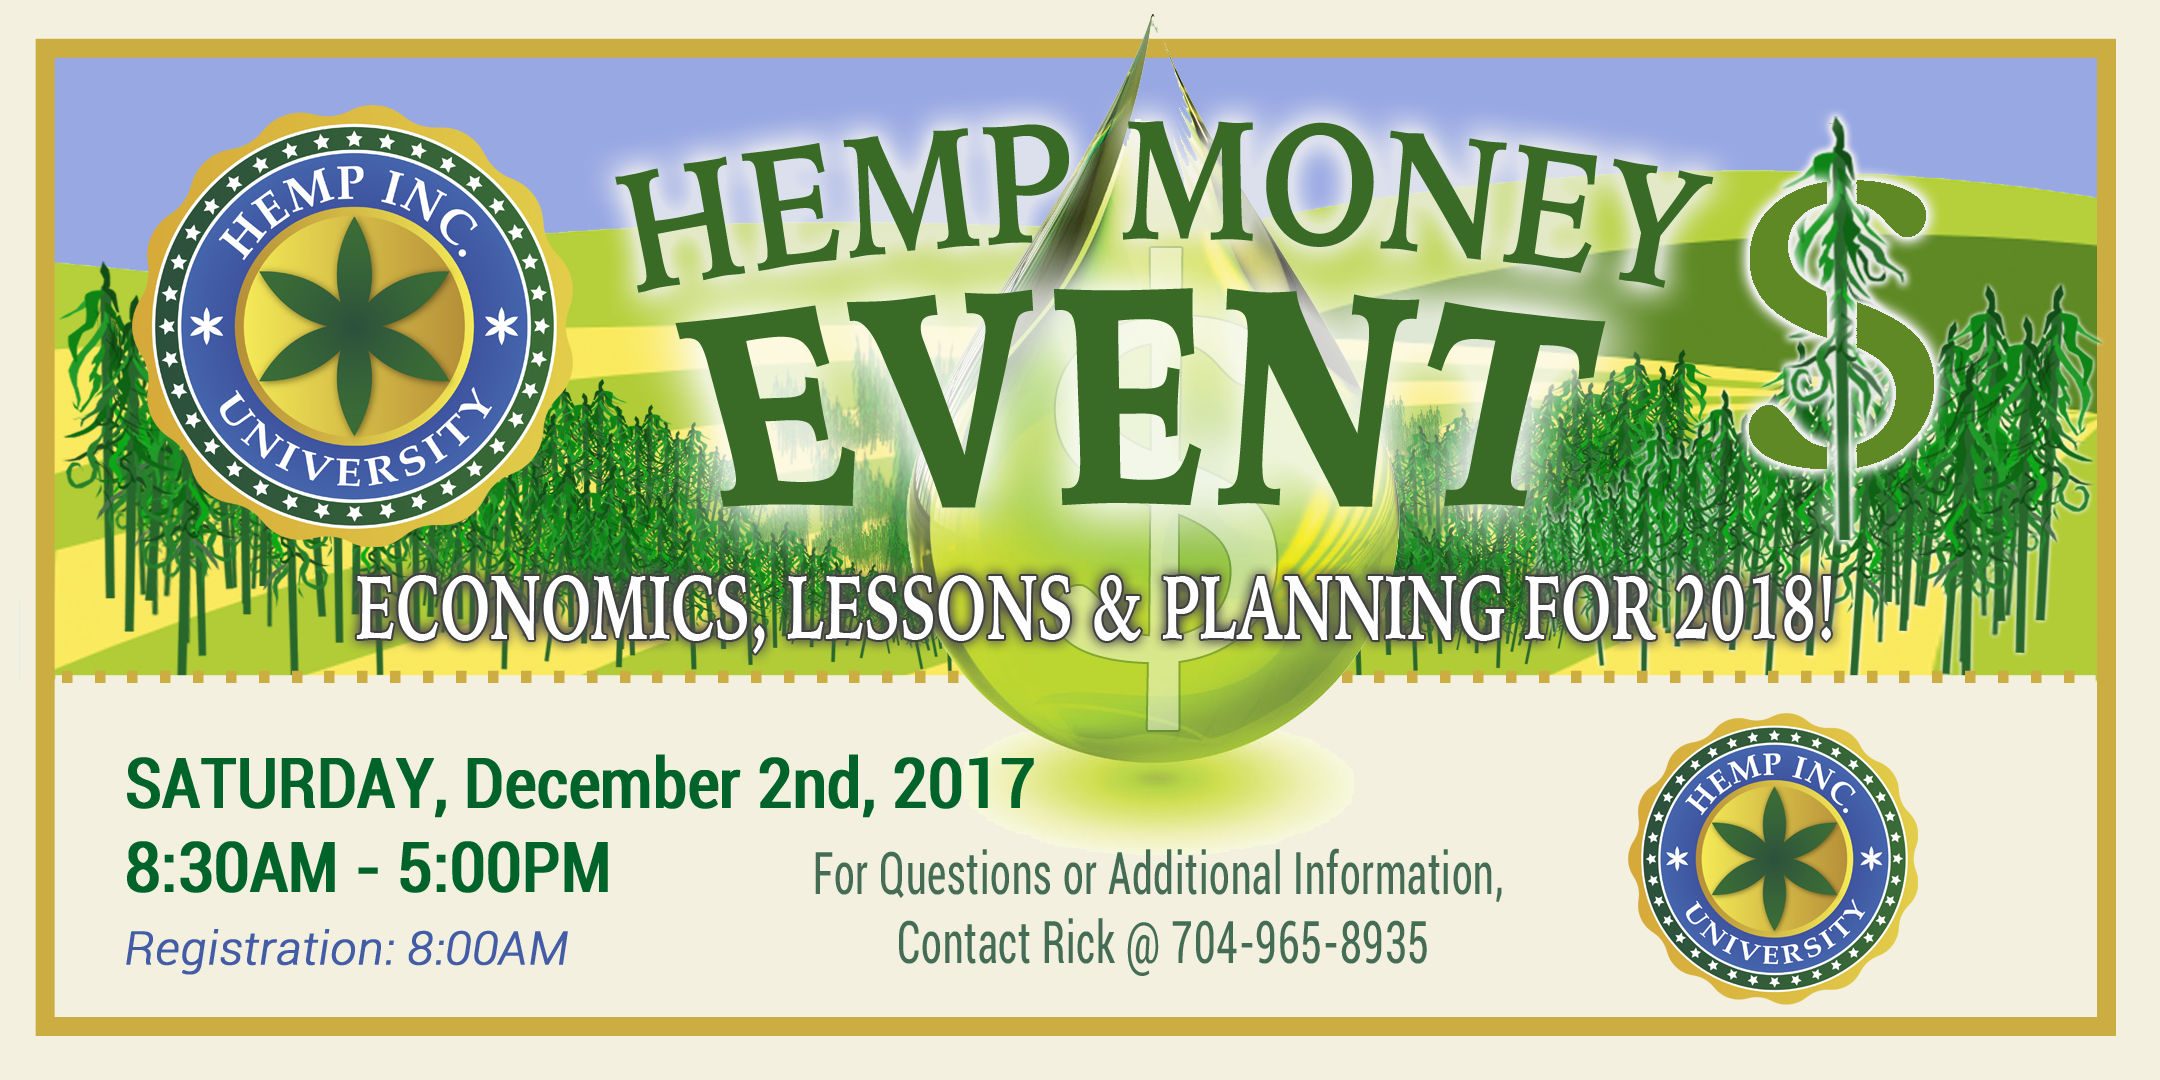 THE HEMP MONEY EVENT - Economics, Lessons & Planning for 2018